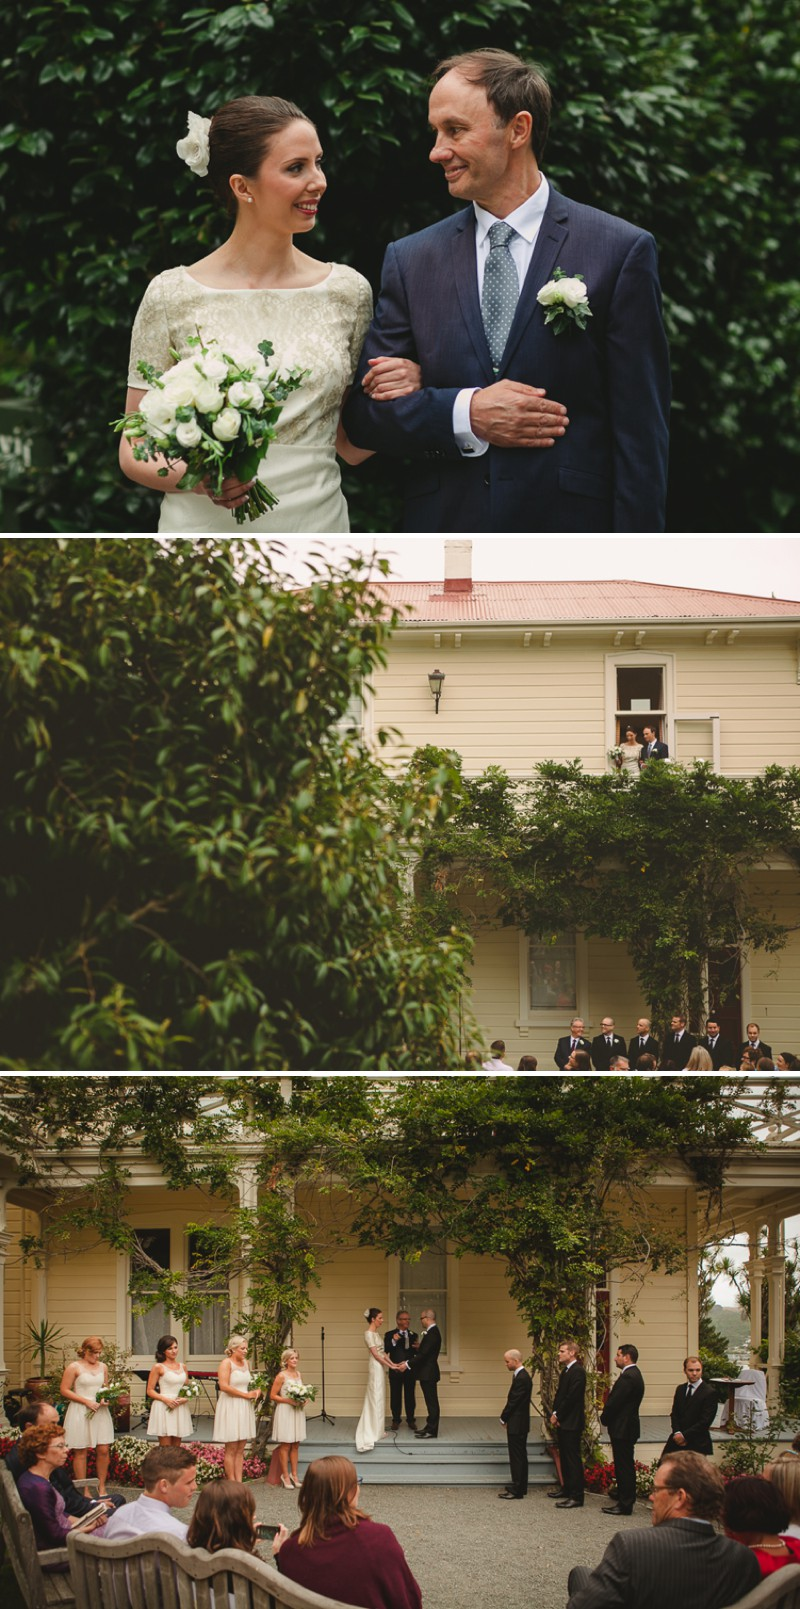 A Destination Black Tie Wedding At Gear Homestead In New Zealand With A Neutral Colour Scheme and A White Rose Bouquet By Tim Williams Photography._0005